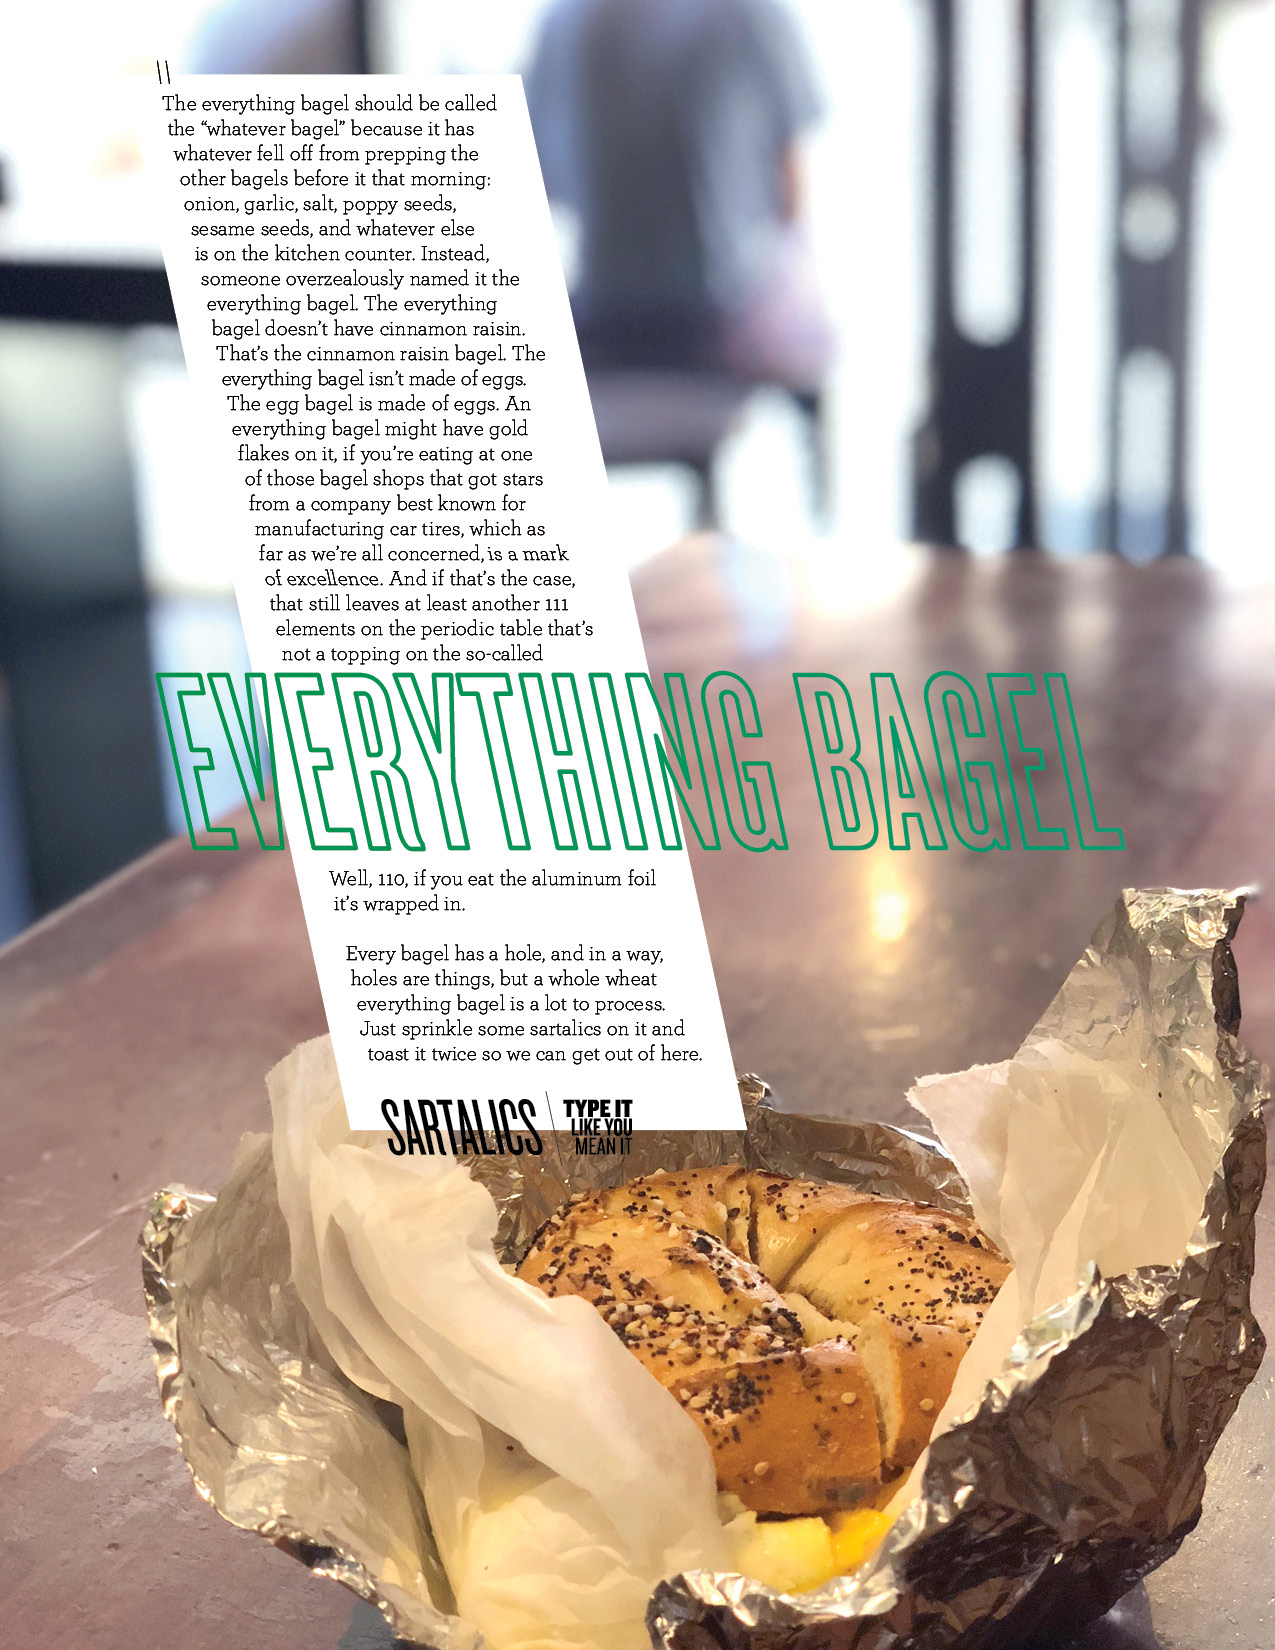 sartalics_print-everything-bagel_8d5x11_180930_nh_v1.4.jpg